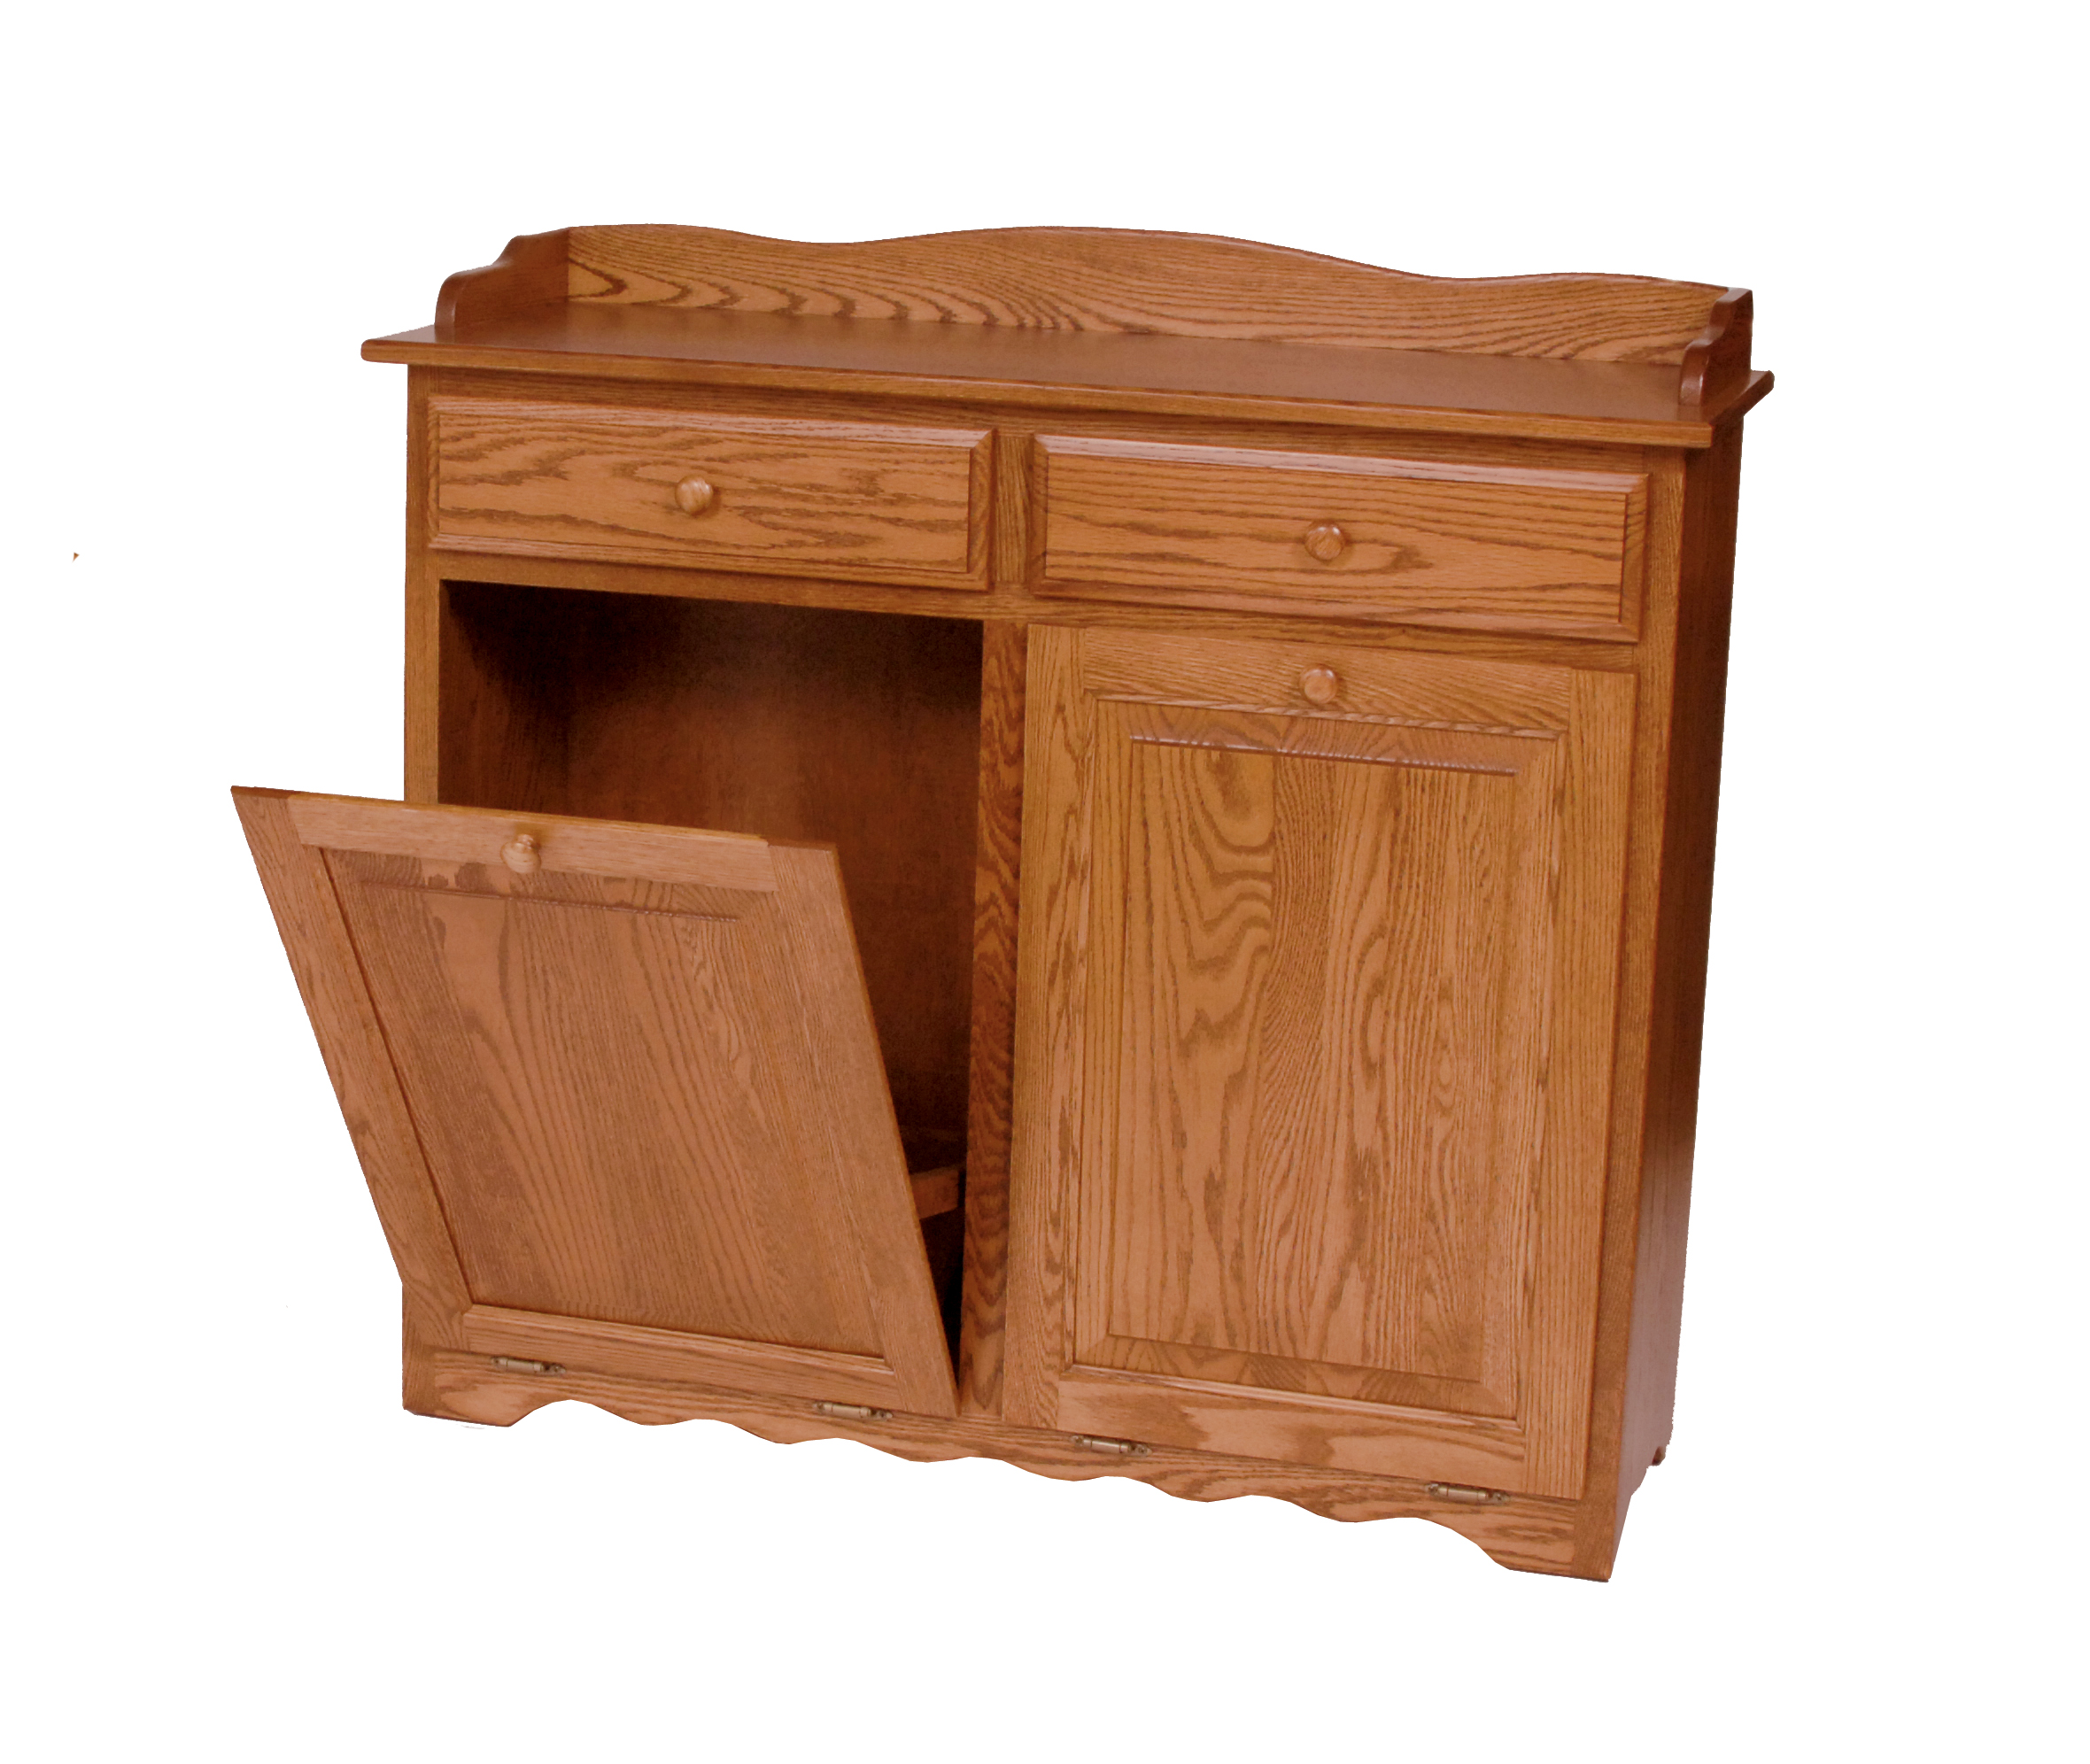 Wooden Kitchen Trash Containers Double Trash Bin With Drawers Amish Valley Products